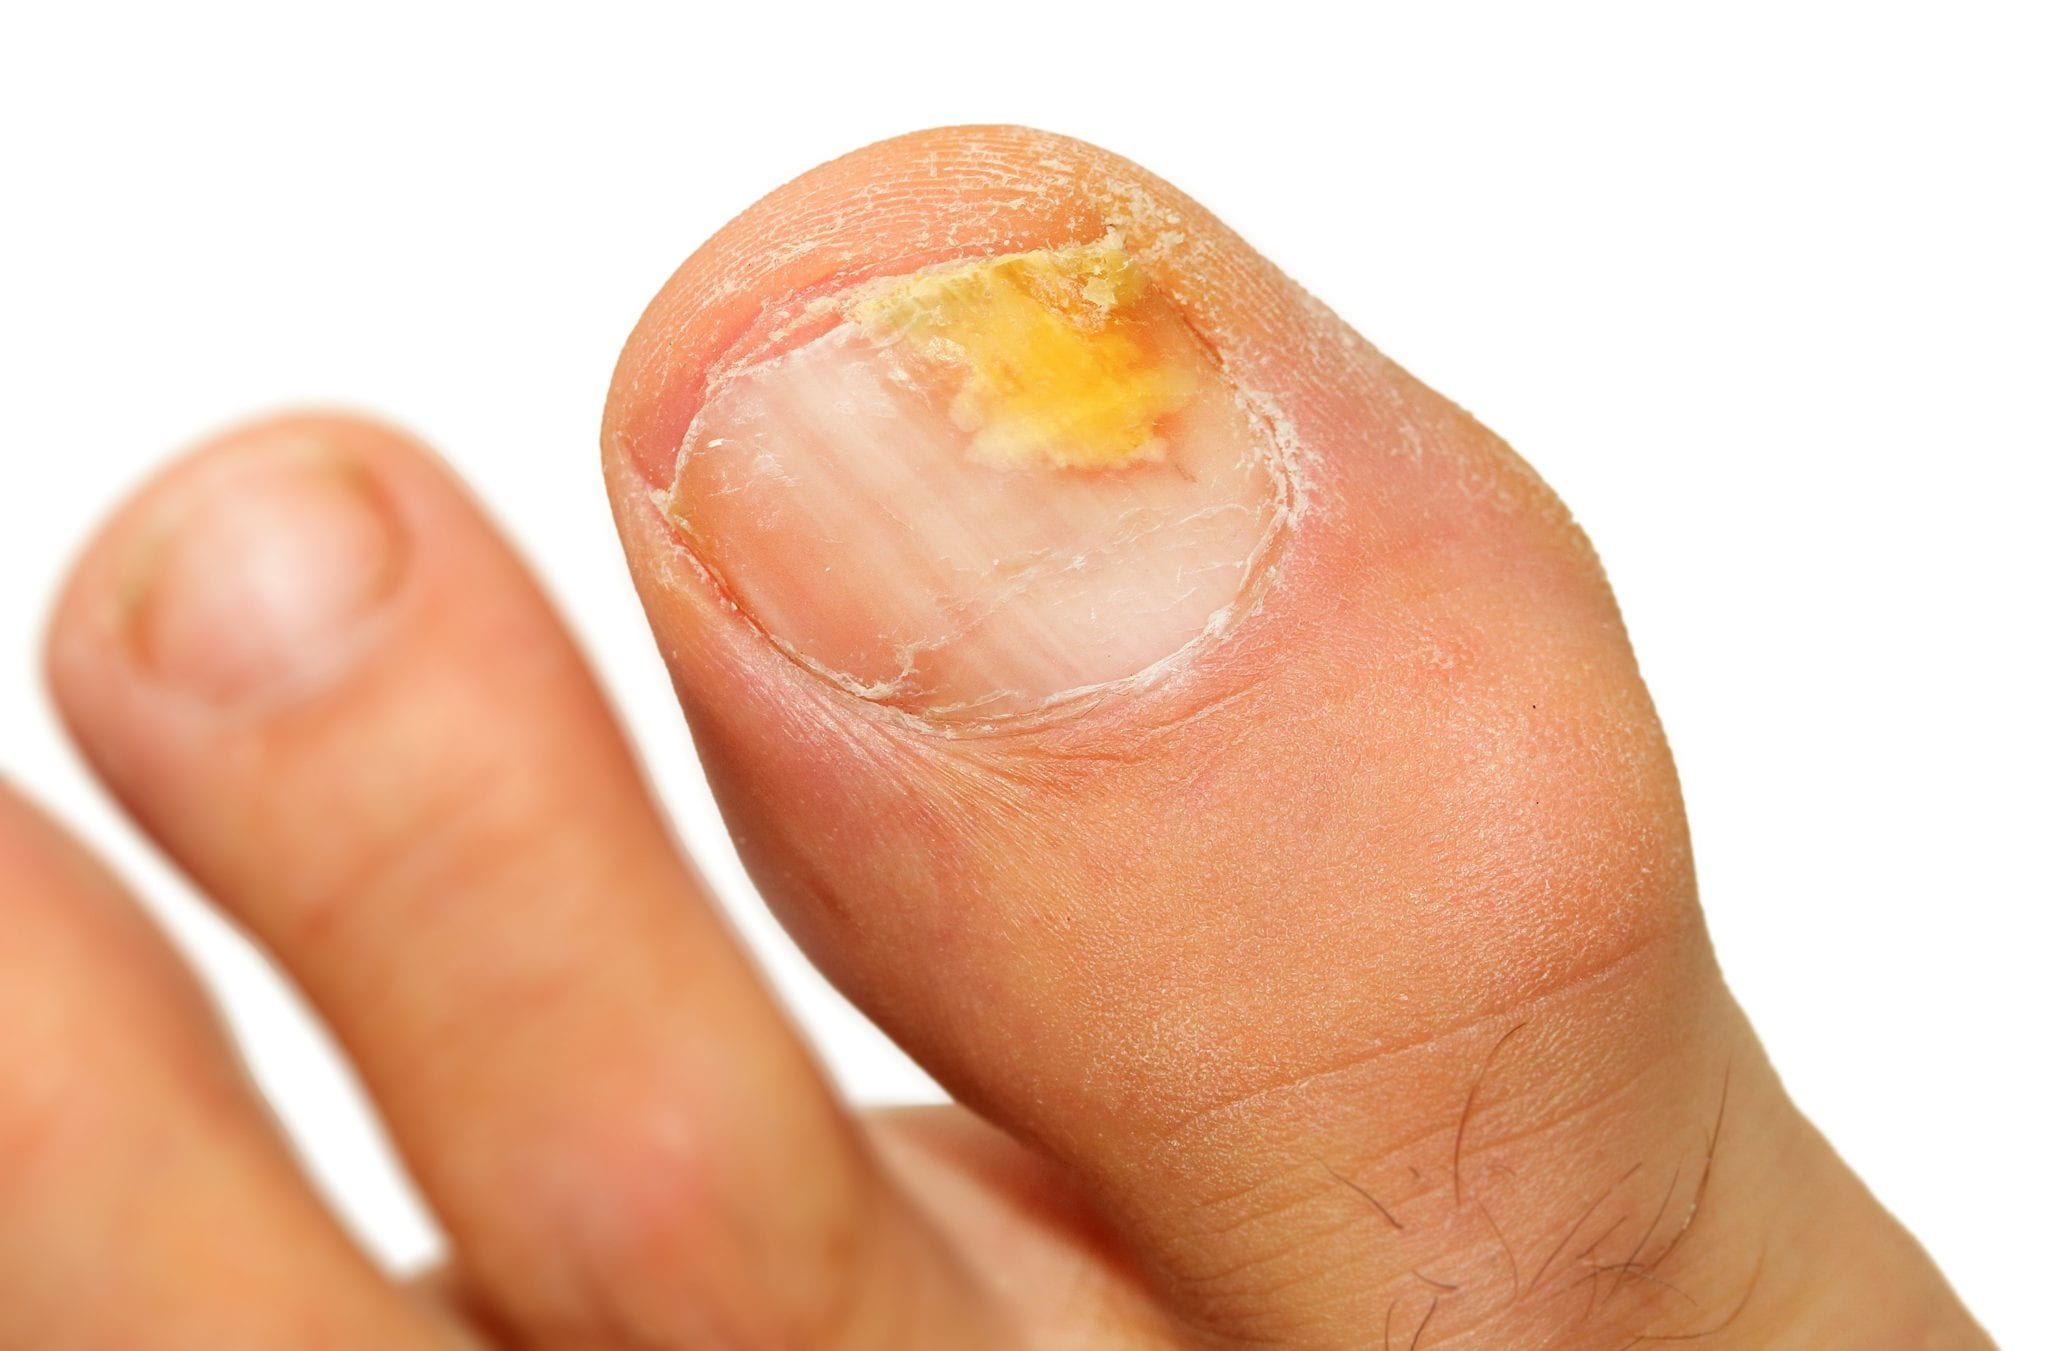 When is it time to visit a foot and ankle doctor for toenail fungus?